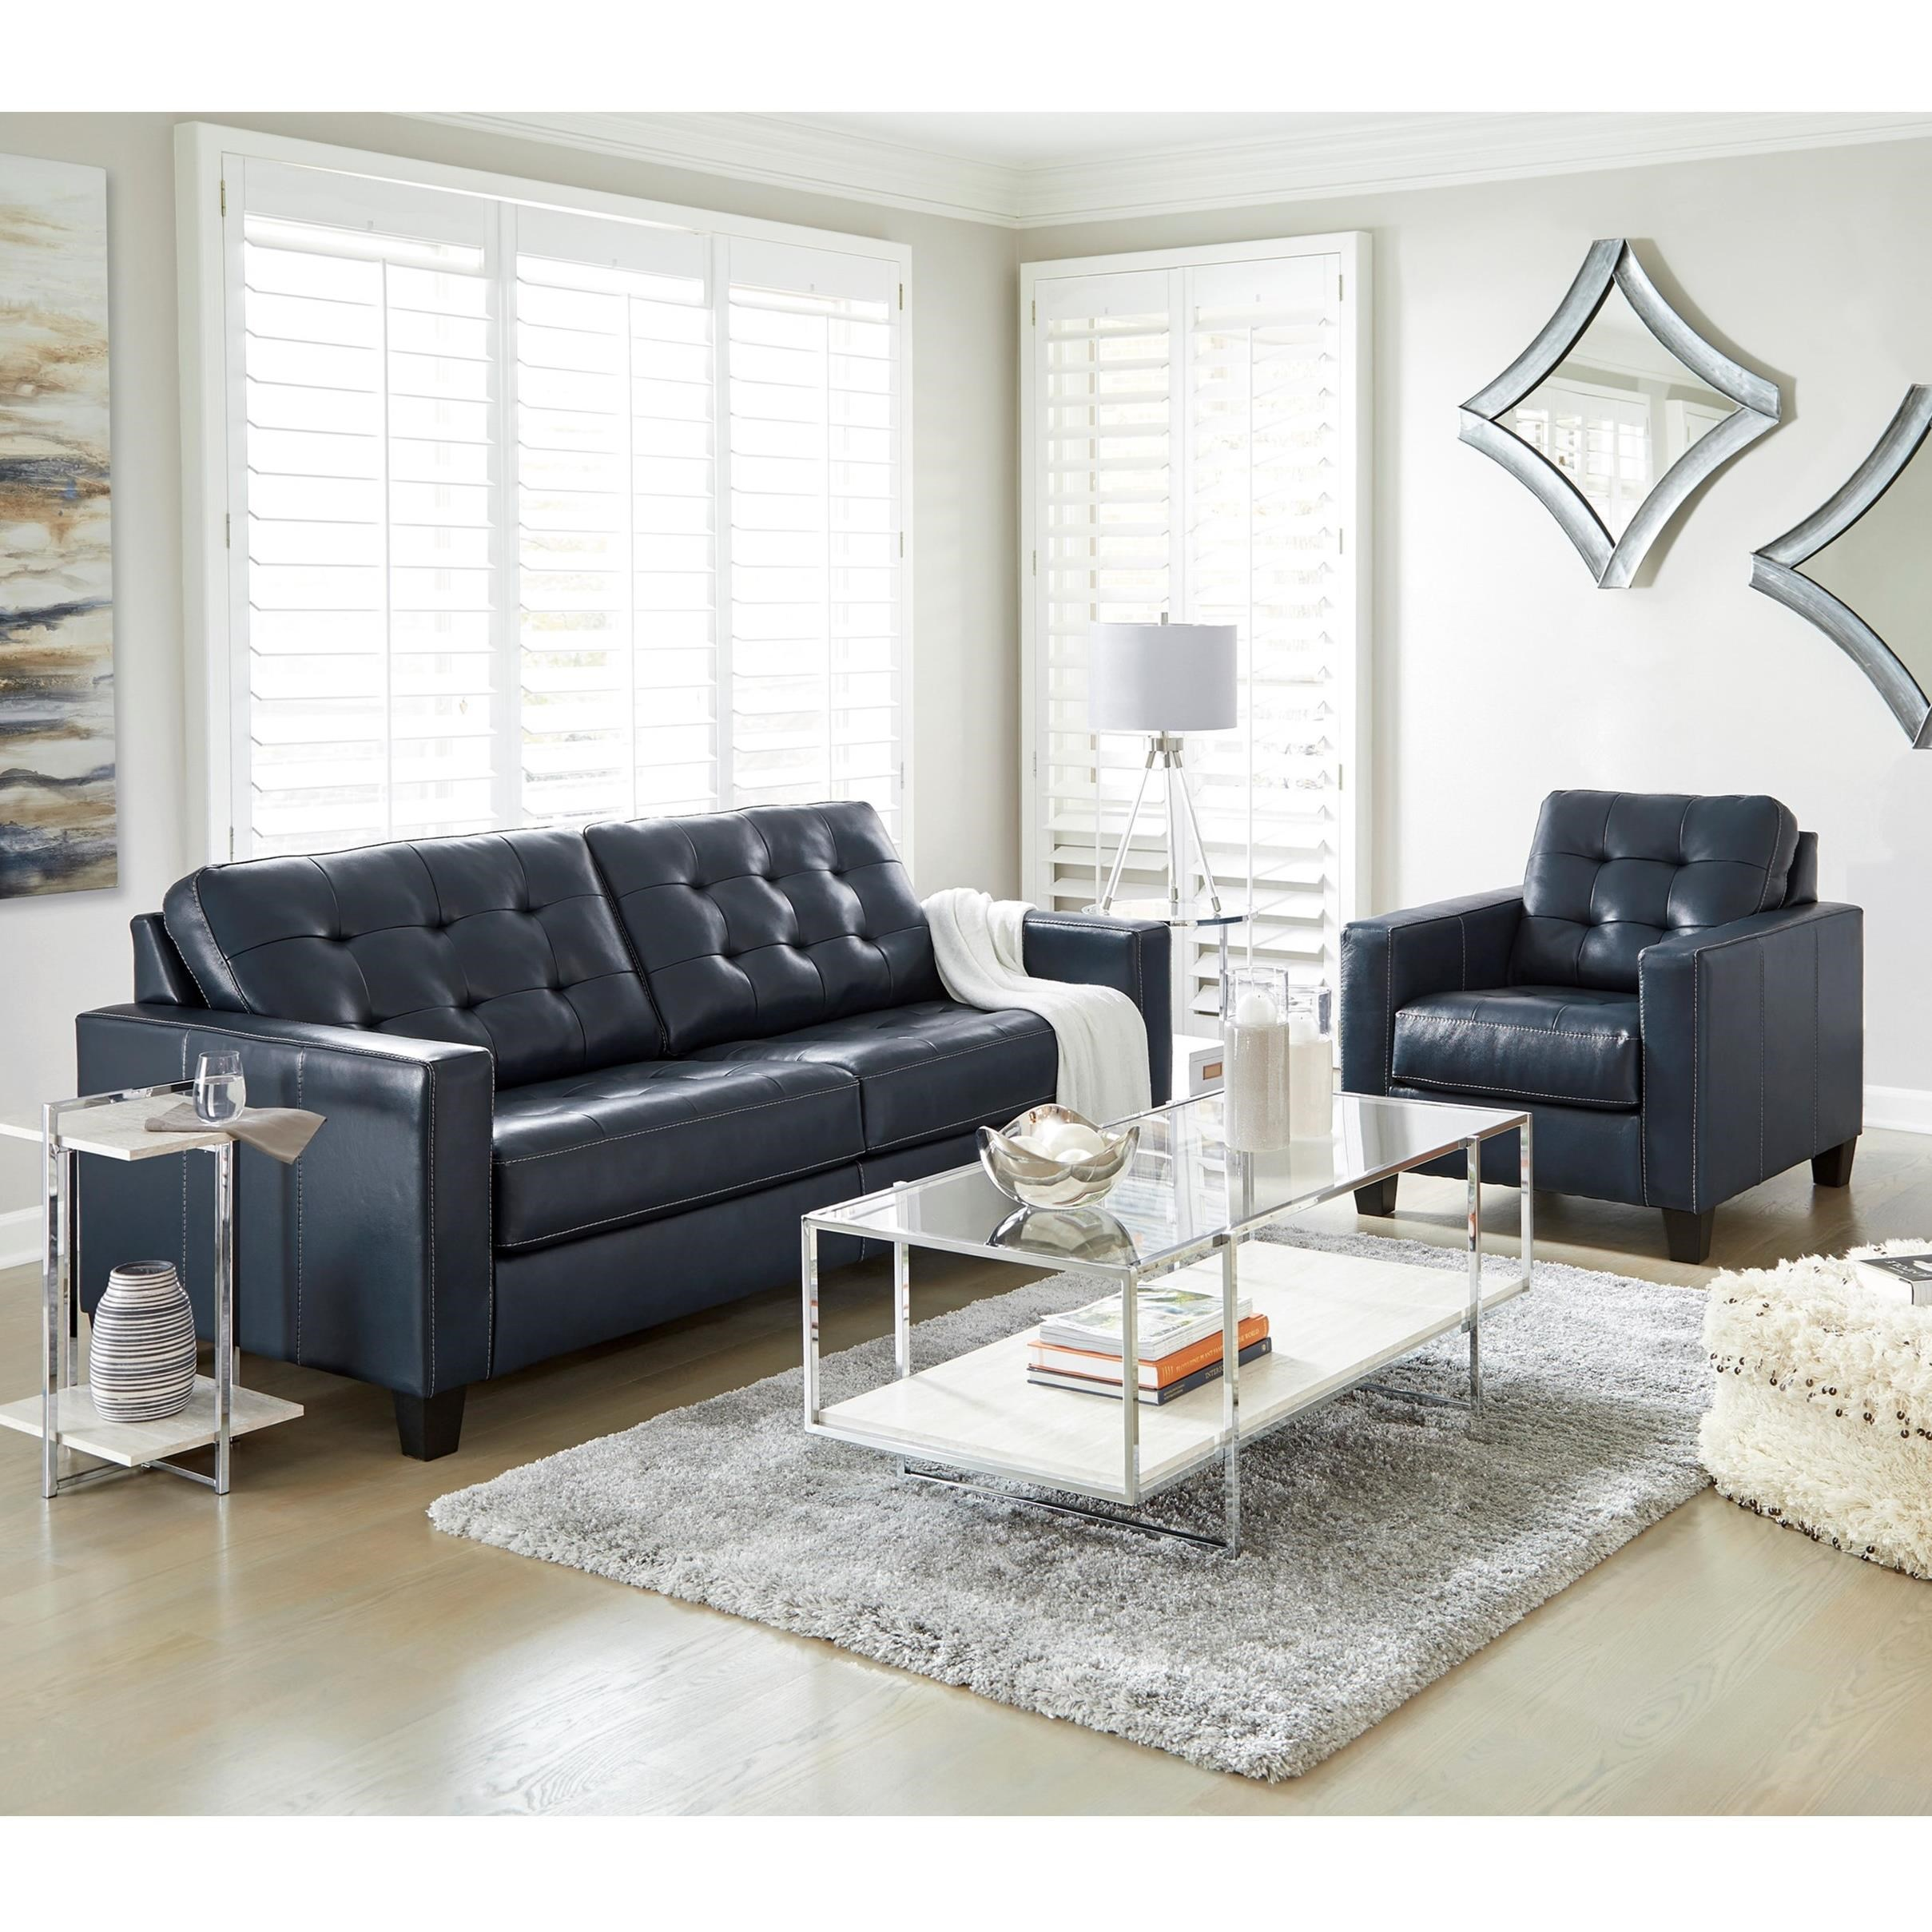 Altonbury Stationary Living Room Group by Signature Design by Ashley at Pilgrim Furniture City